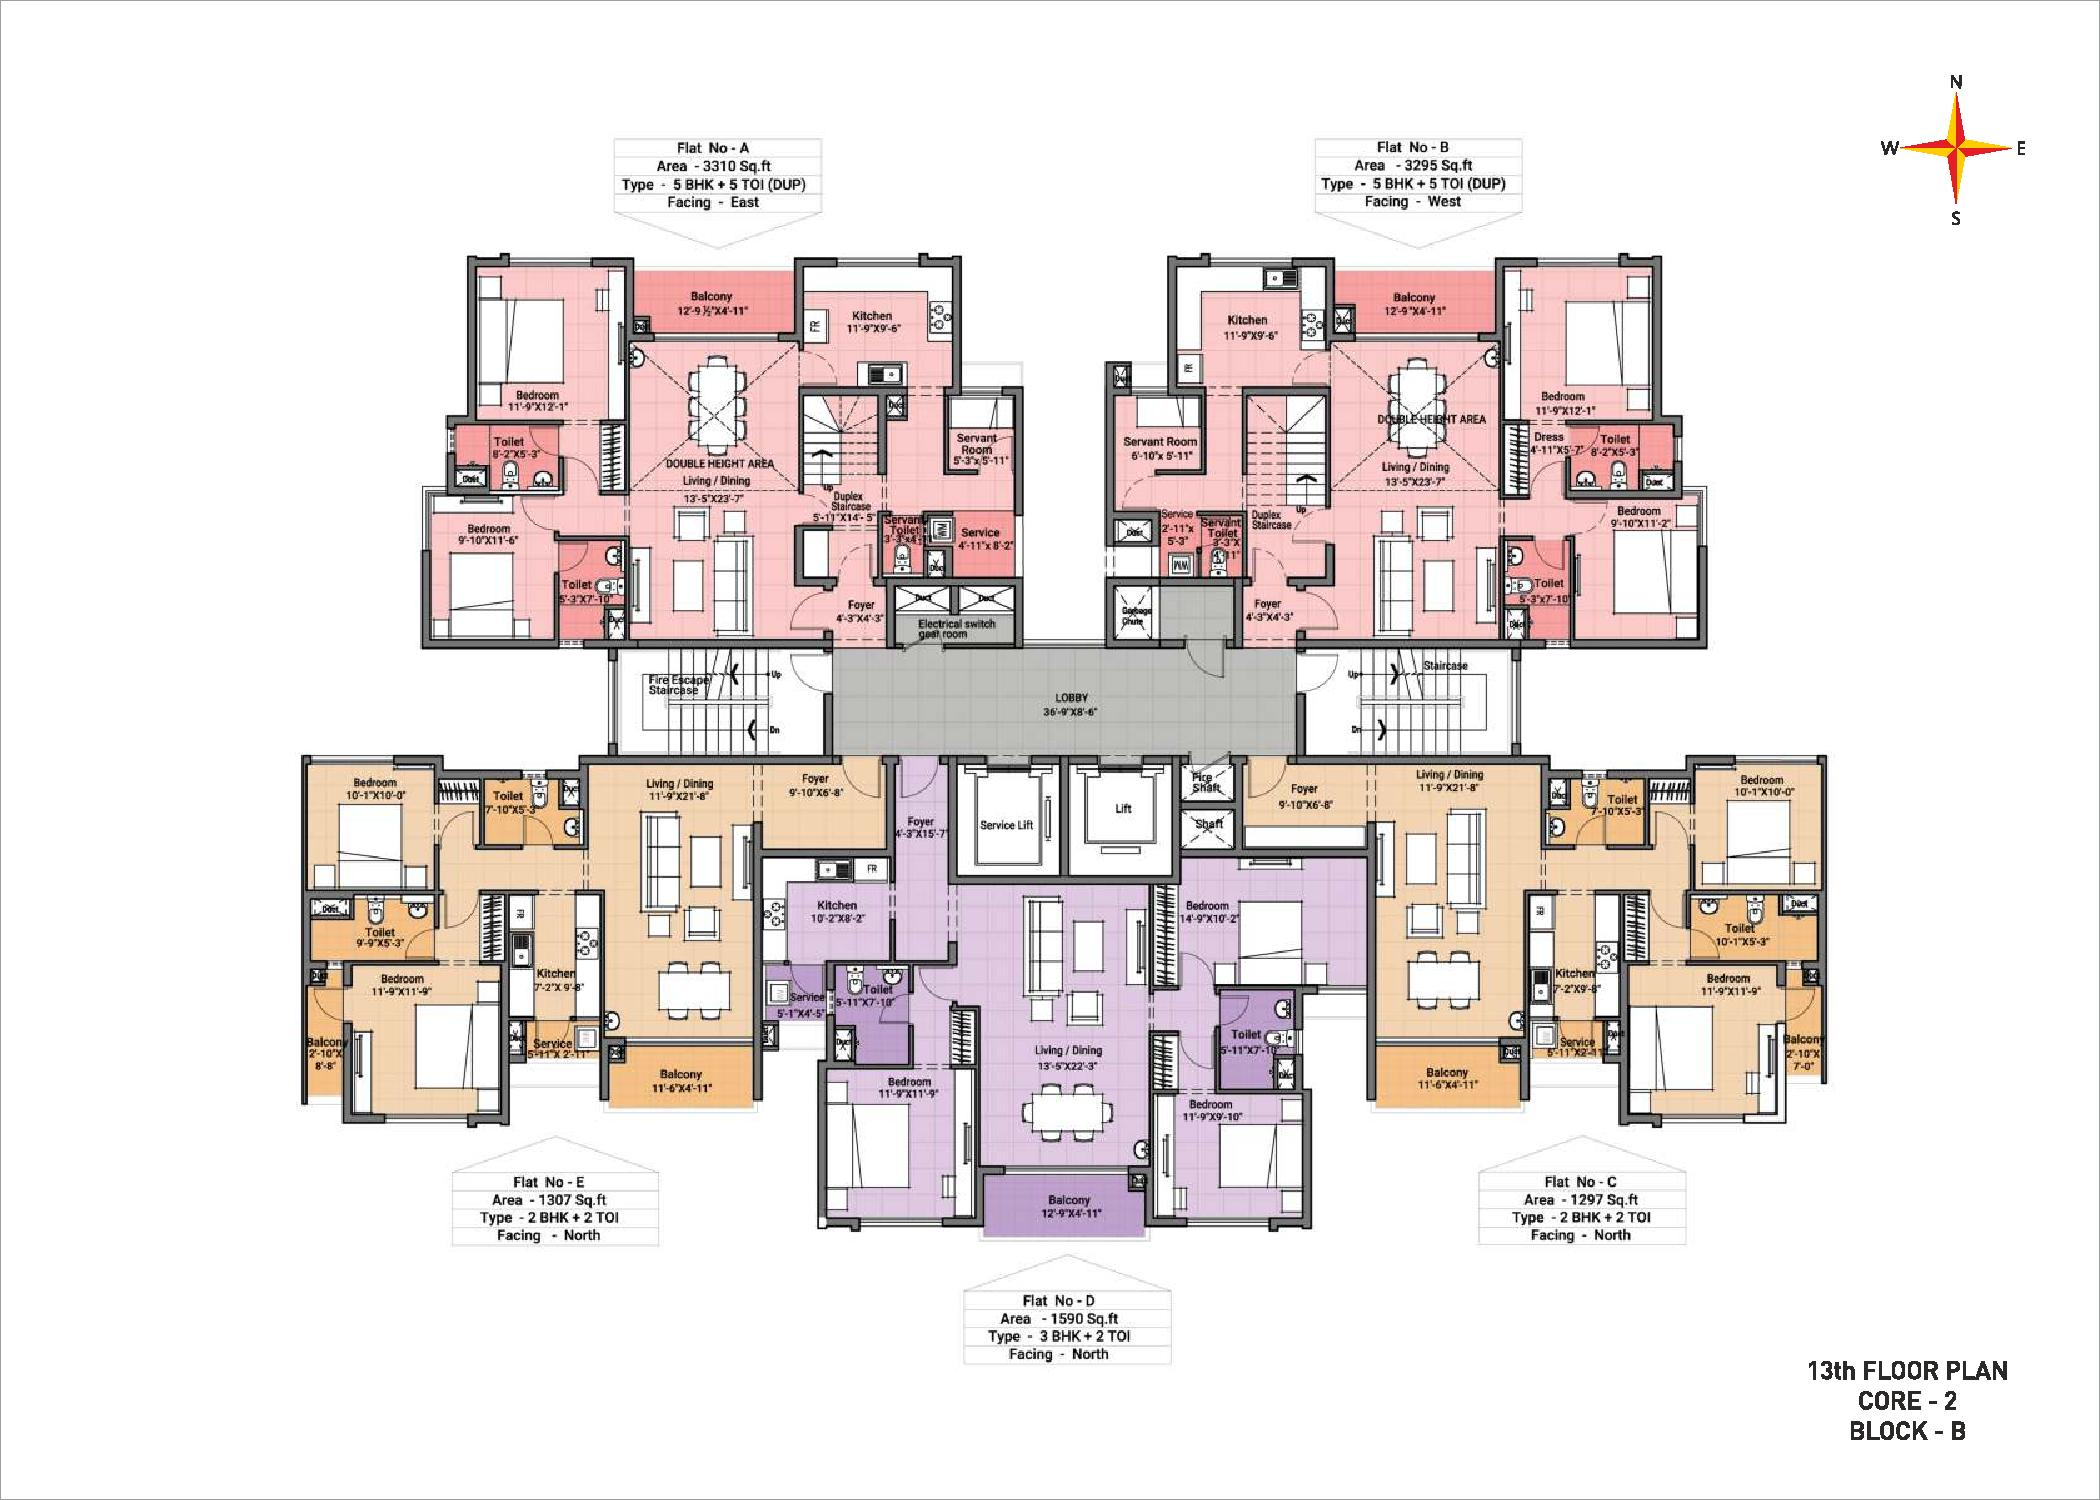 13th Floor plan Block B Core 2